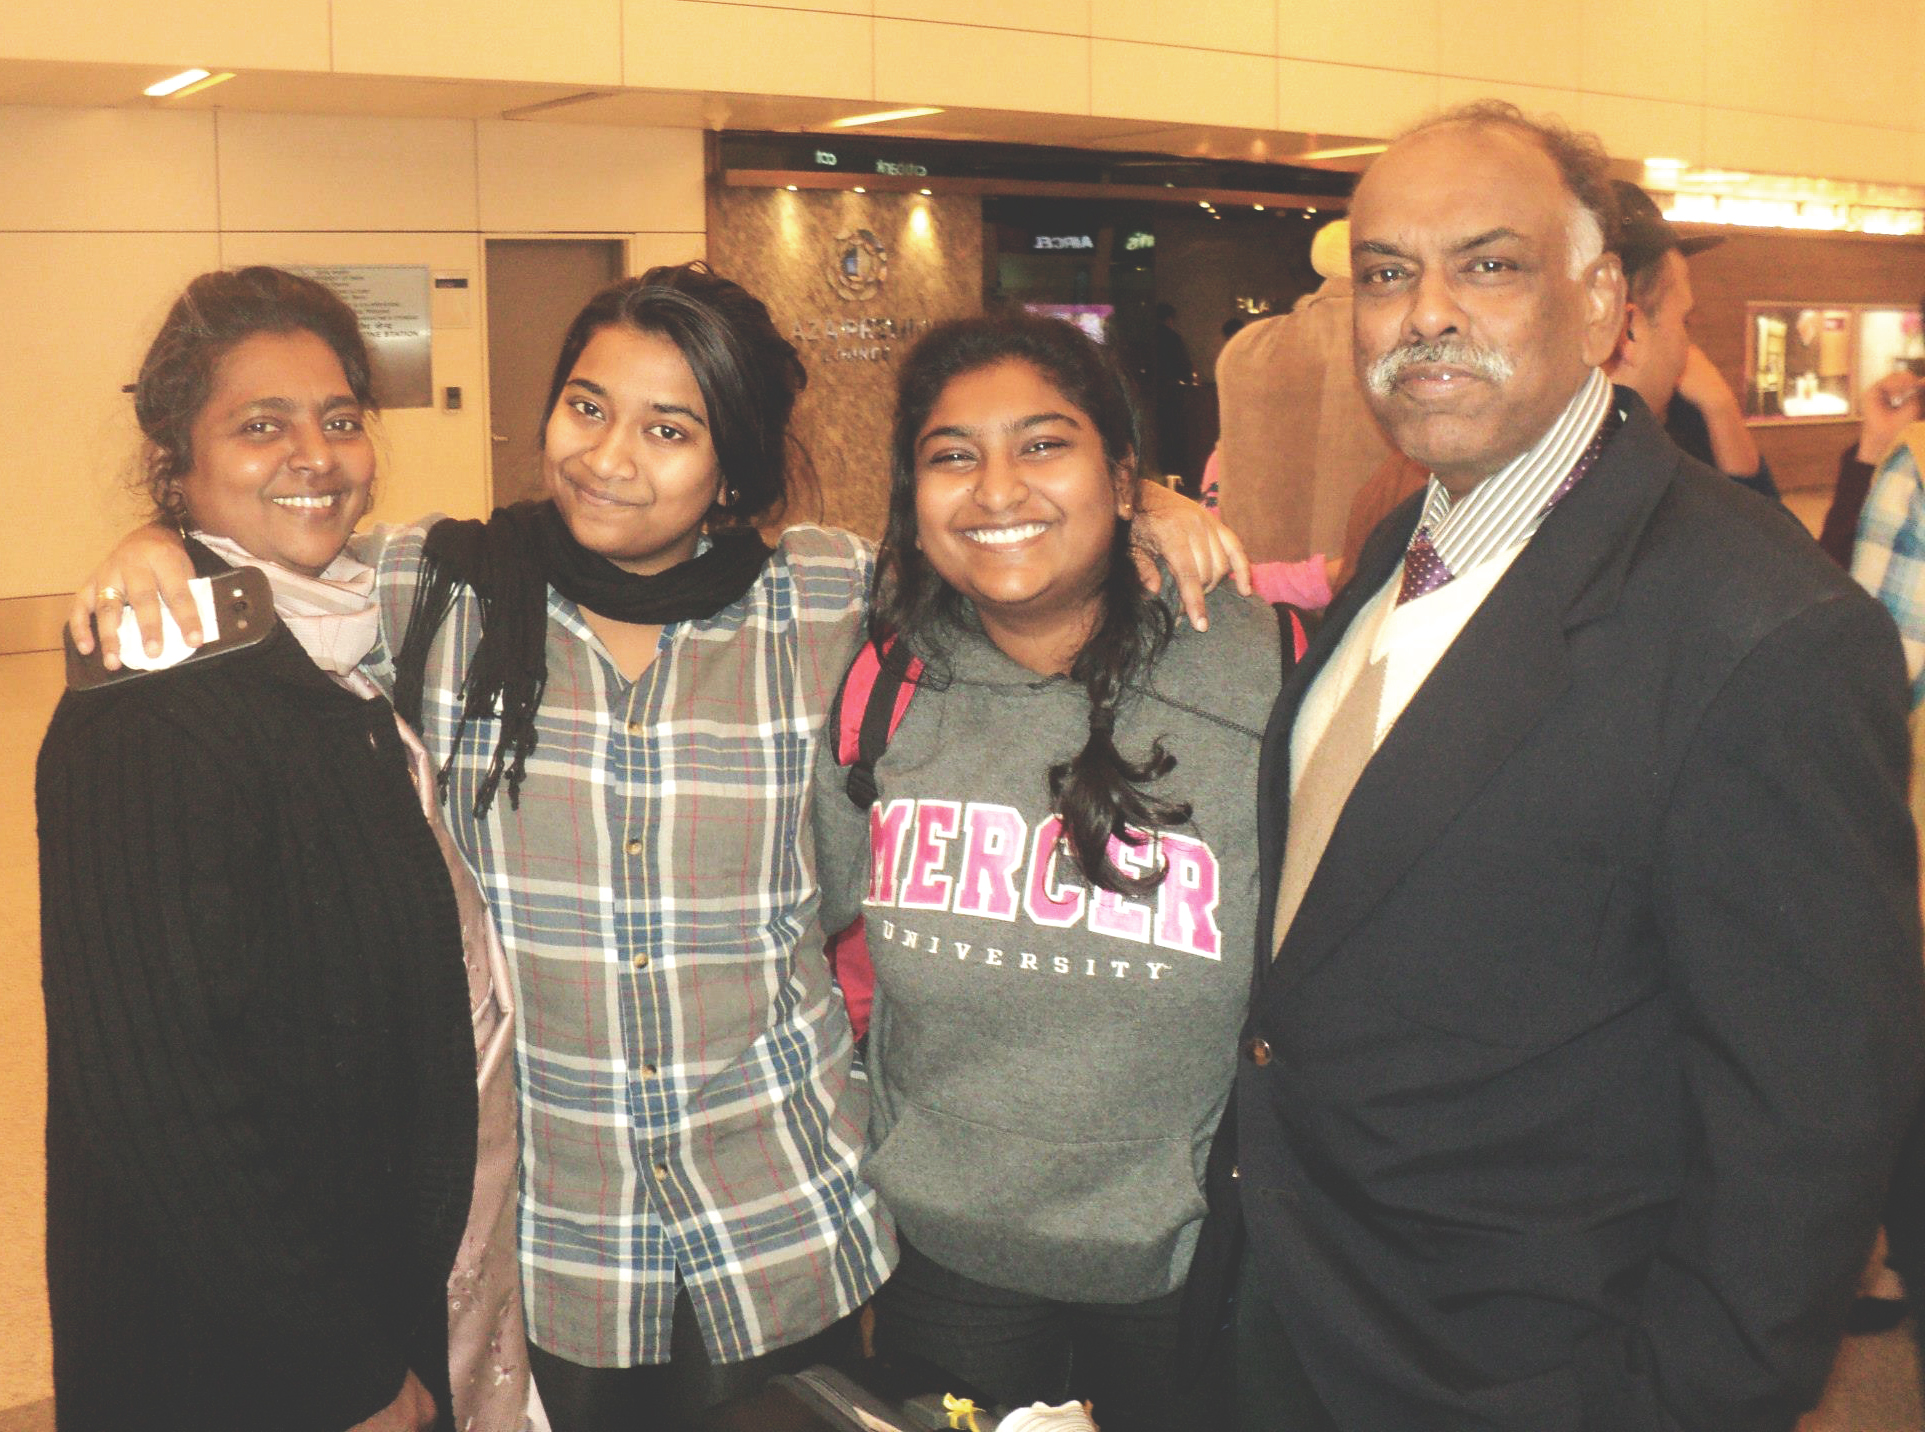 Prashansa Dickson, a senior from India, talks about her experience as an international student in the US. Photo contributed by Prashansa Dickson.